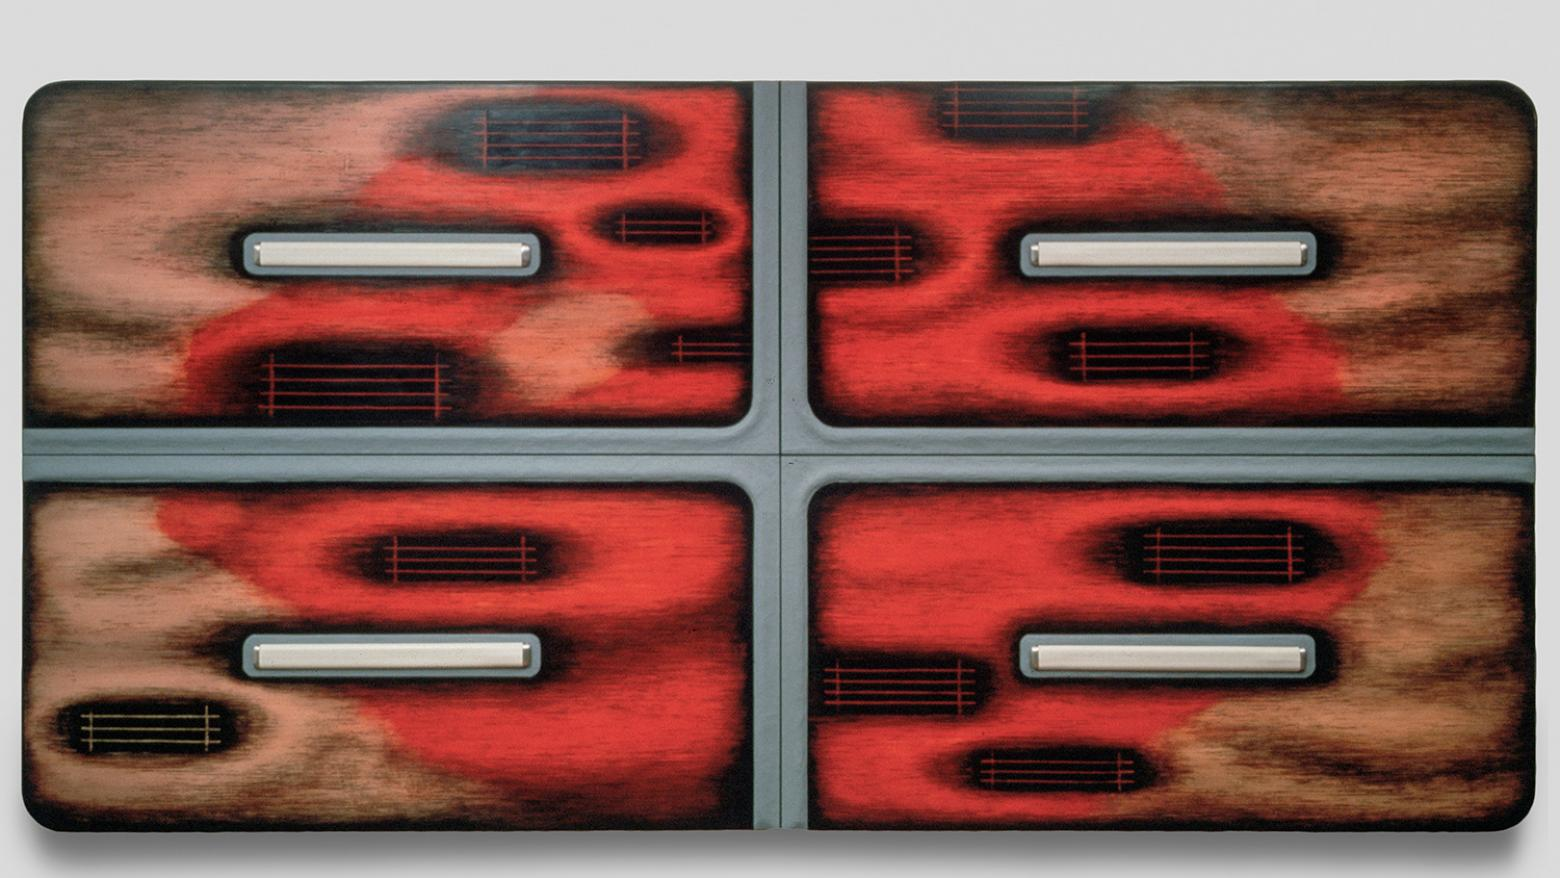 Tishan Hsu, Cell, 1987. Acrylic, compound, oil, alkyd, vinyl, aluminum on wood. 96 x 192 x 4 inches (244 x 488 x 10 cm). Collection of Ralph Wernicke / Hubertushoehe art + architecture, Berlin and Zürich.